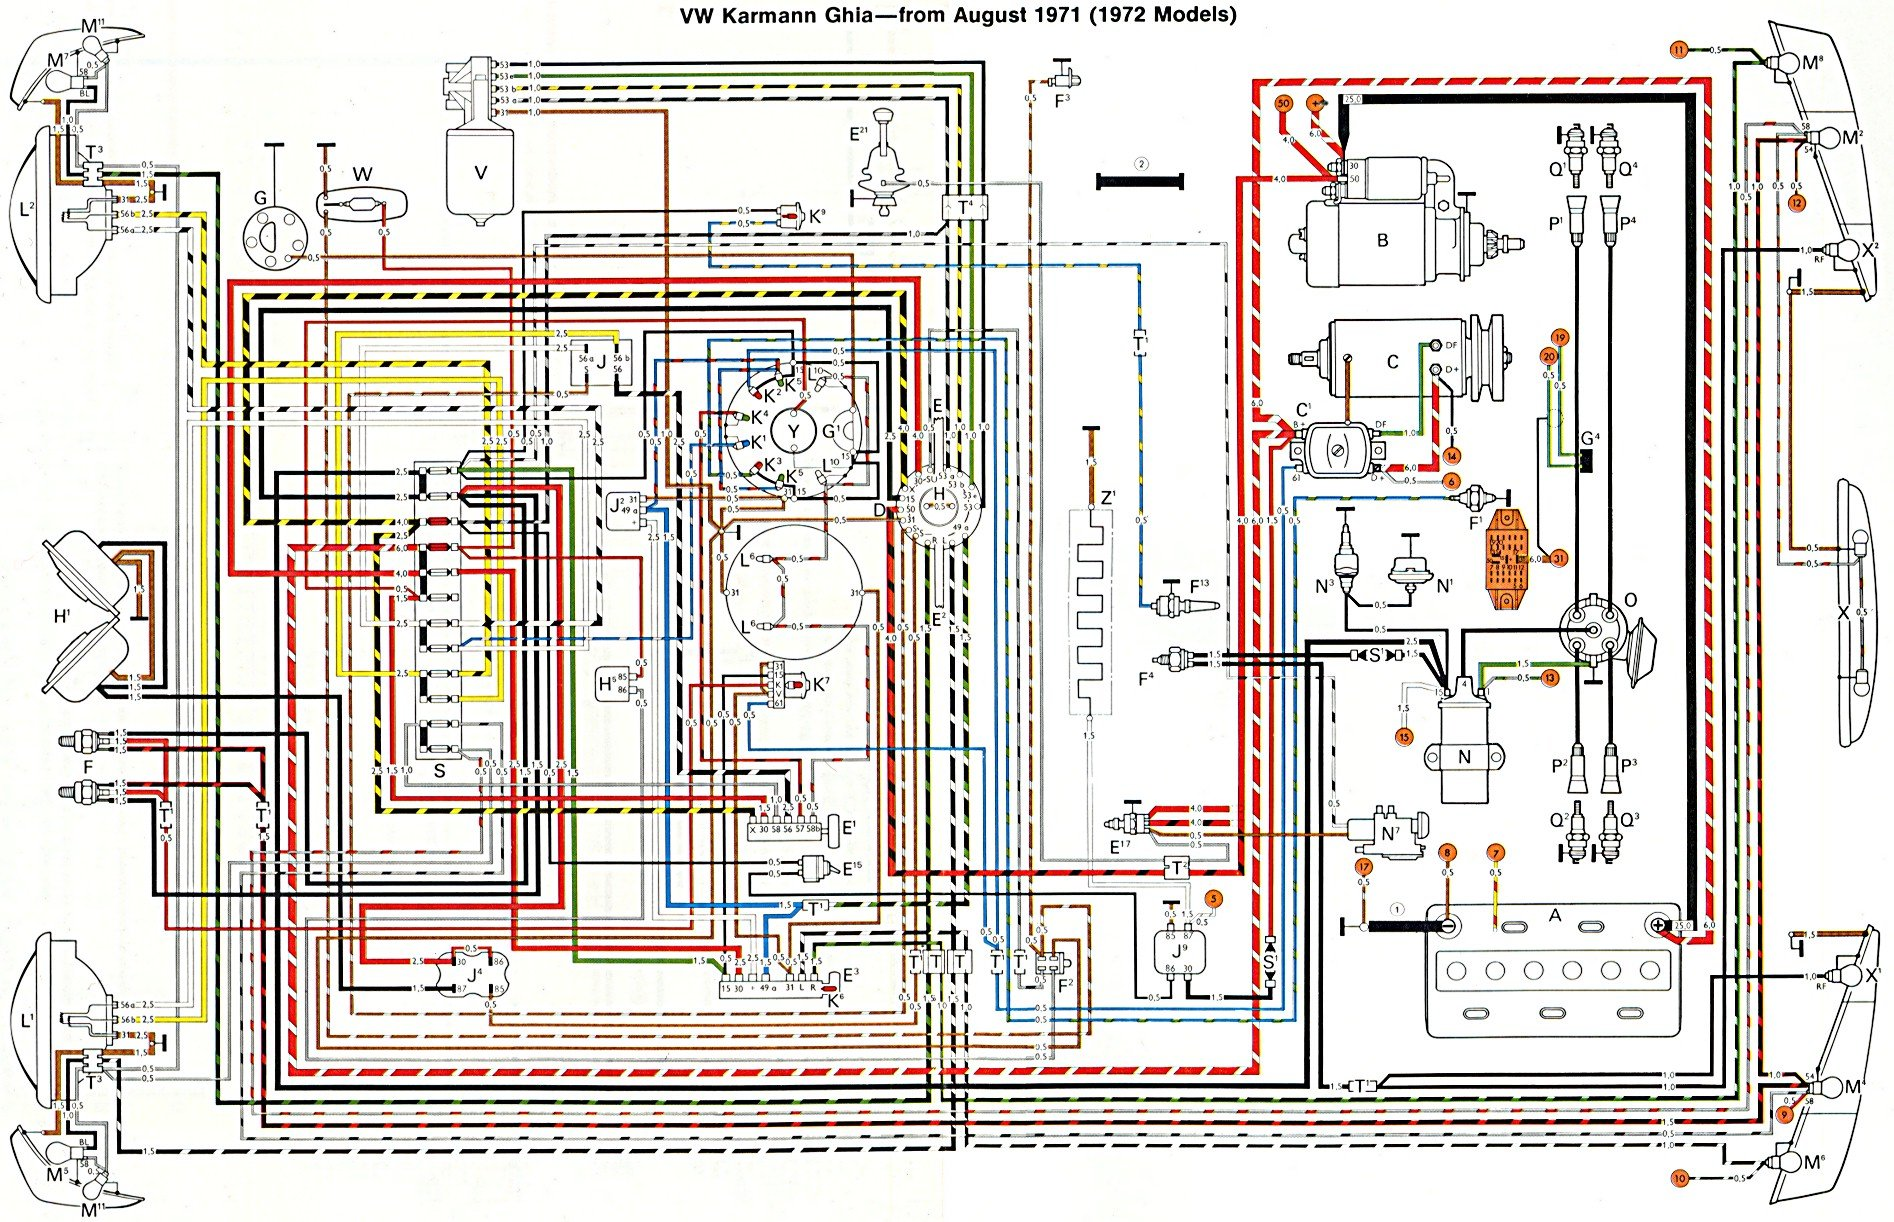 wiring diagram 1968 karmann ghia wiring schematic diagram rh 149 twizer co